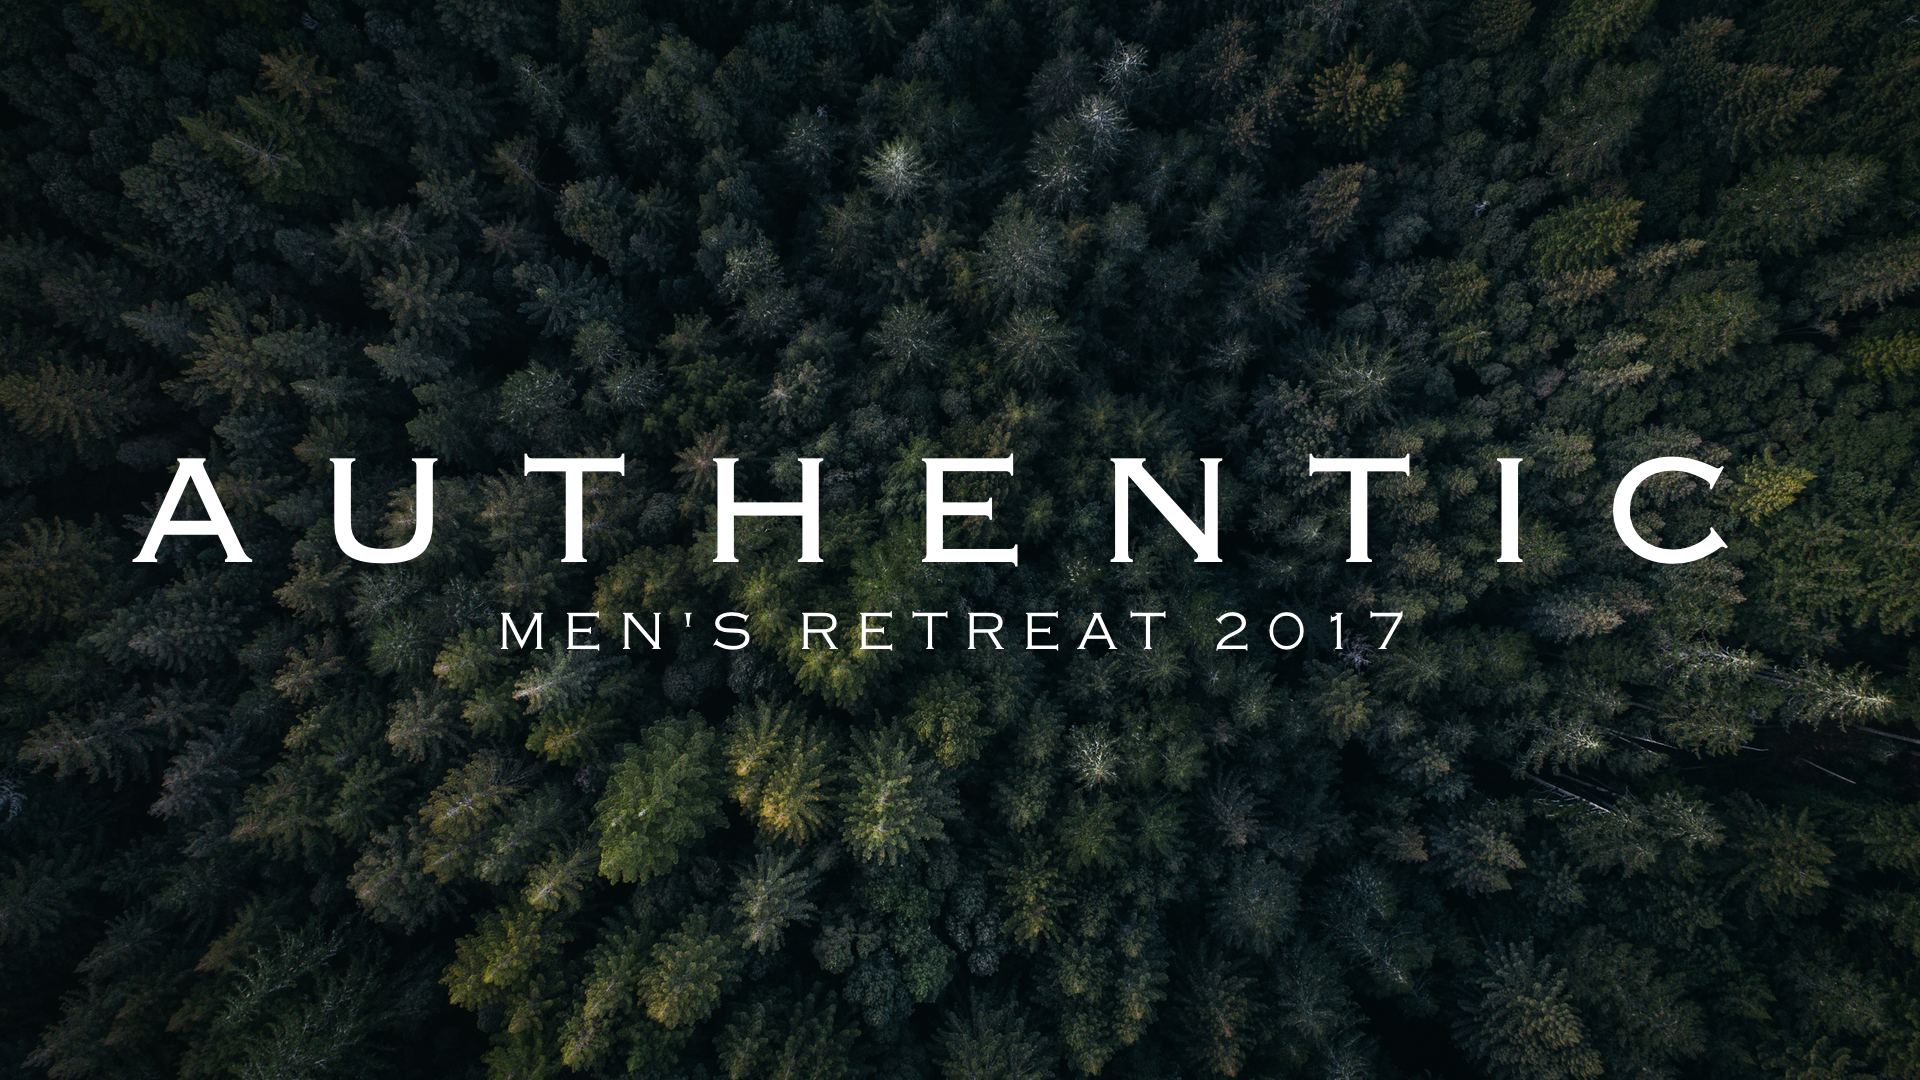 Men s retreat banner